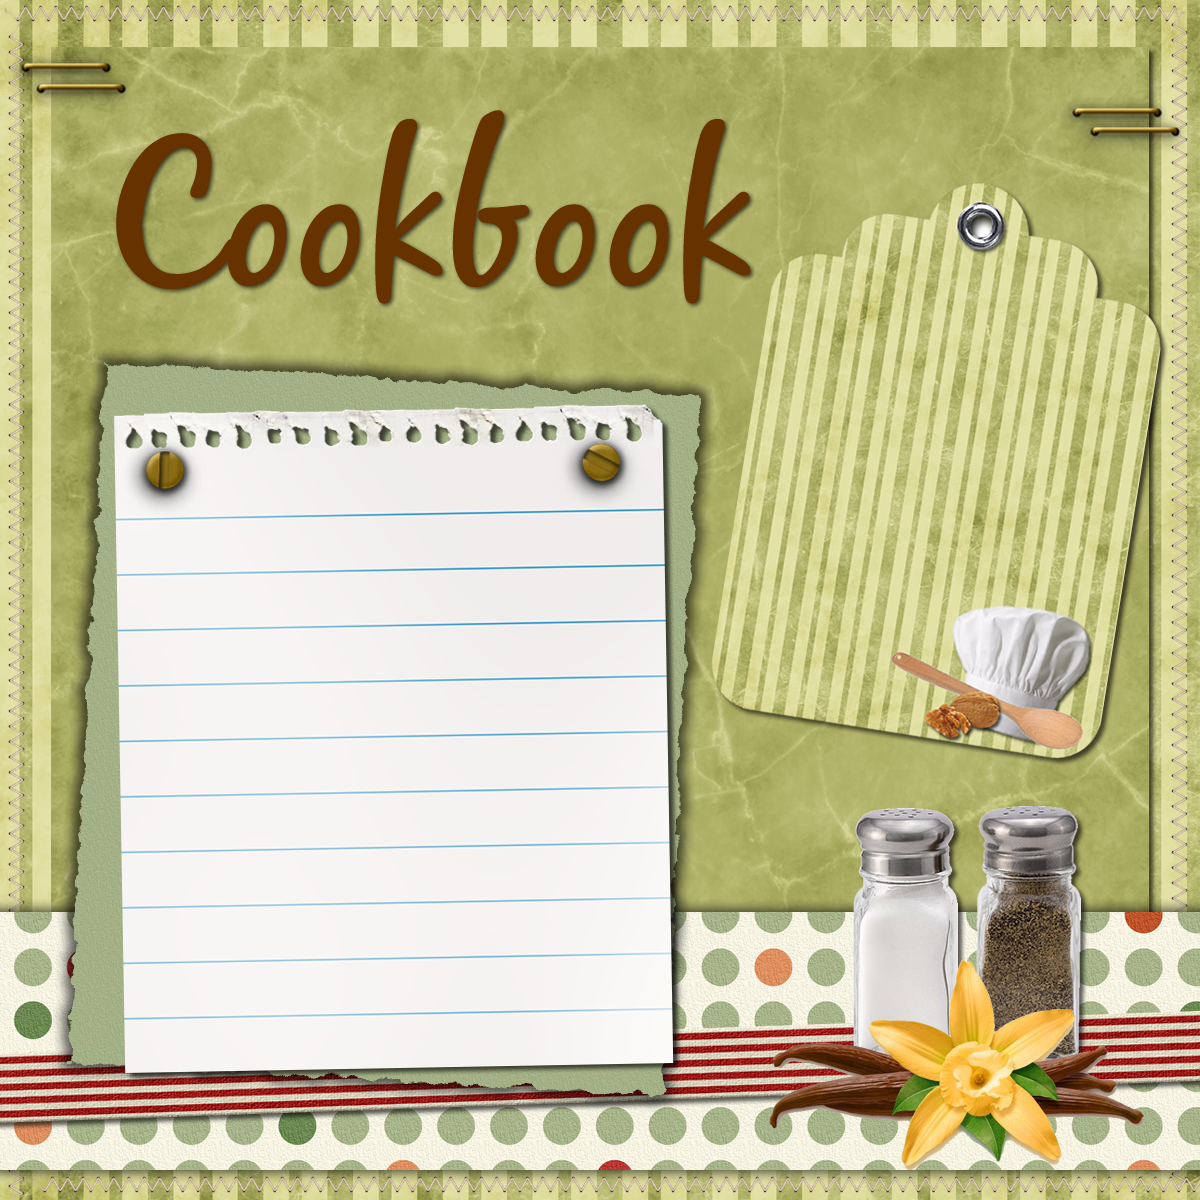 Recipe Book Cover Design ~ Cookbook cover design images pictures becuo wgggtt